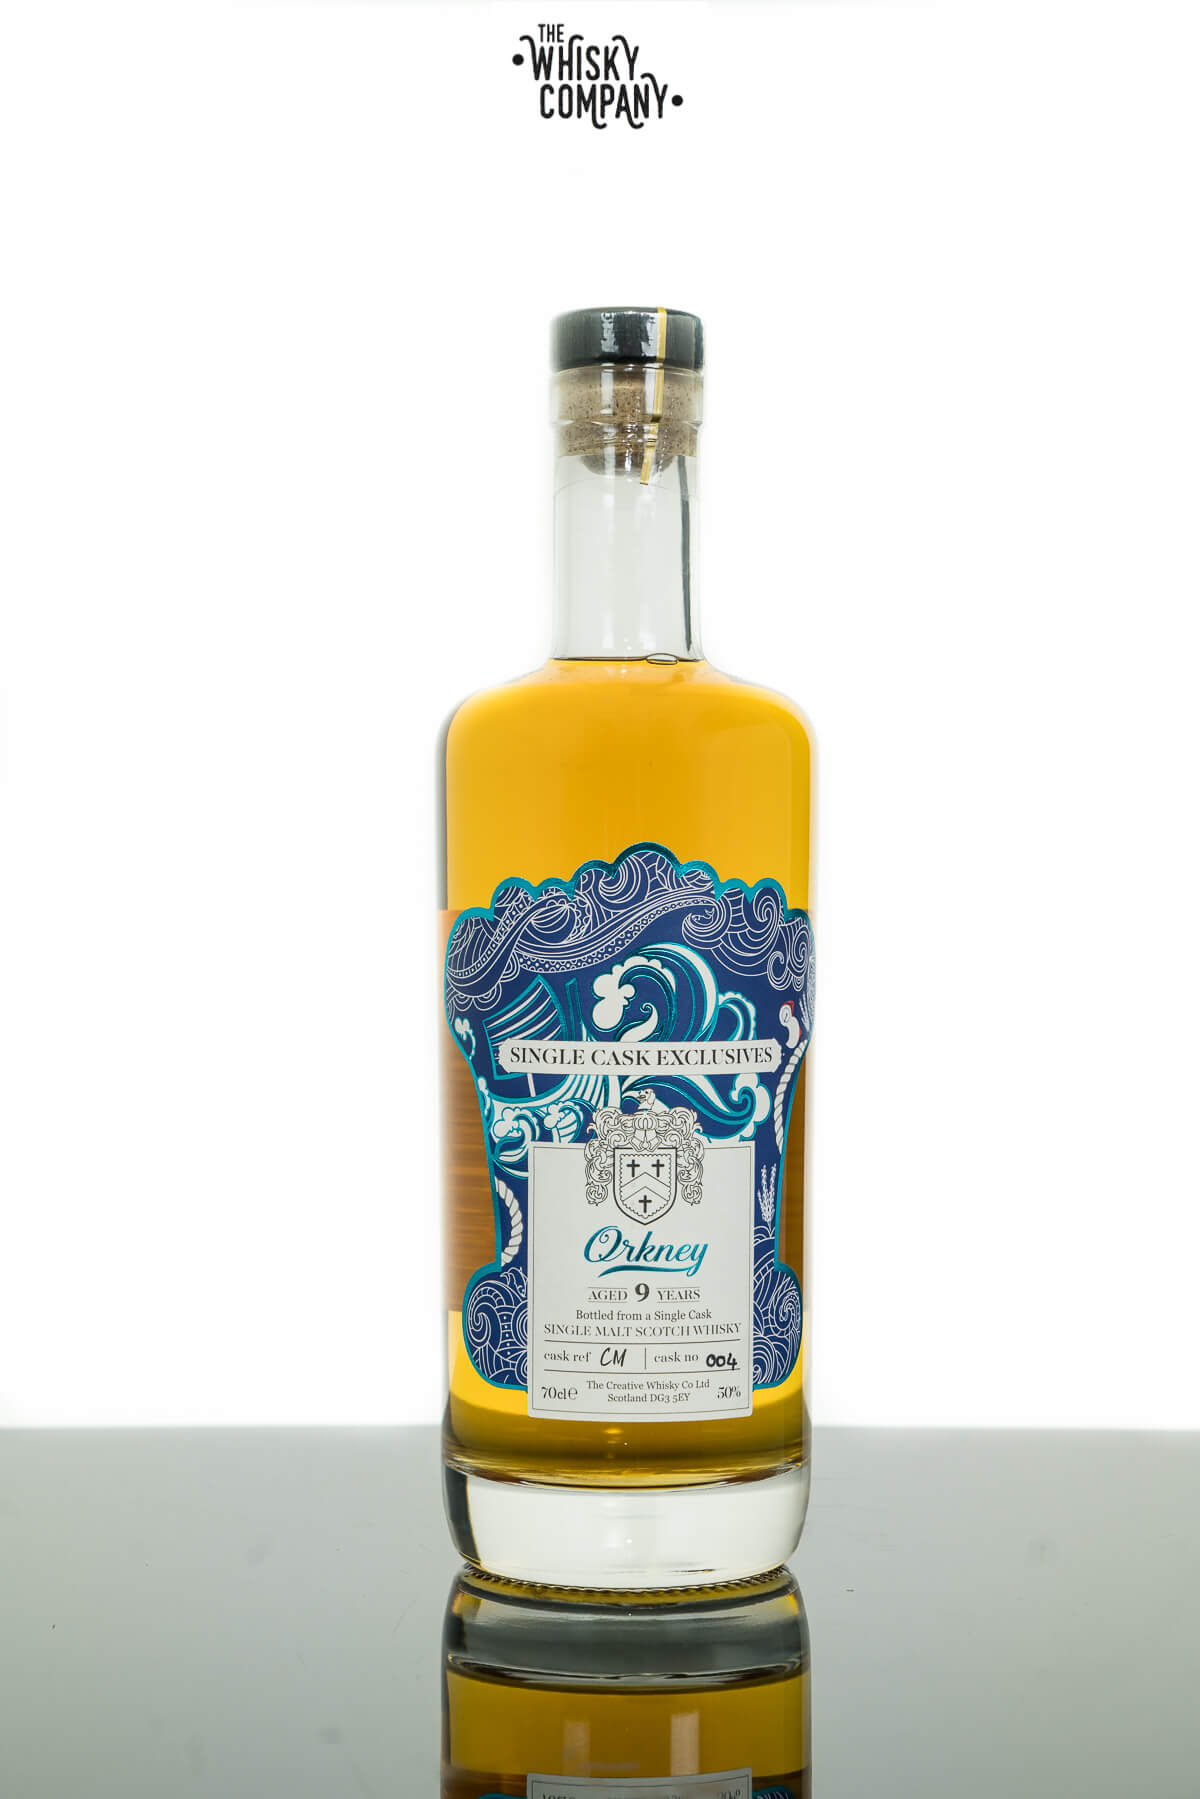 Creative Whisky Co. Orkney Aged 9 Years Cask No. 004 Single Malt Scotch Whisky (700ml)